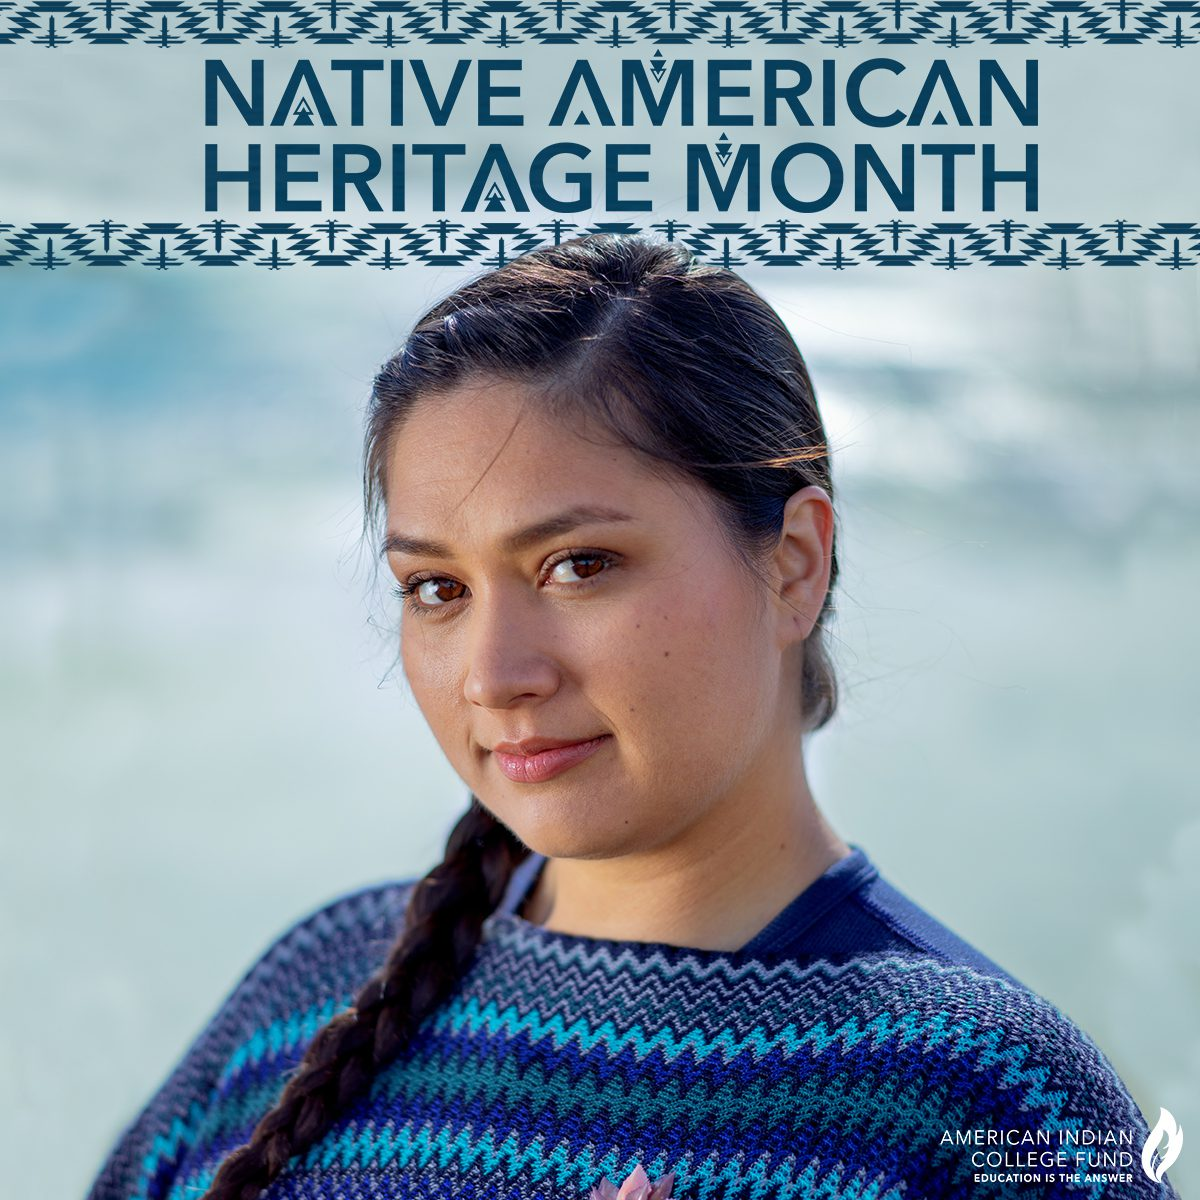 Native American Heritage Month - Share on Instagram 3